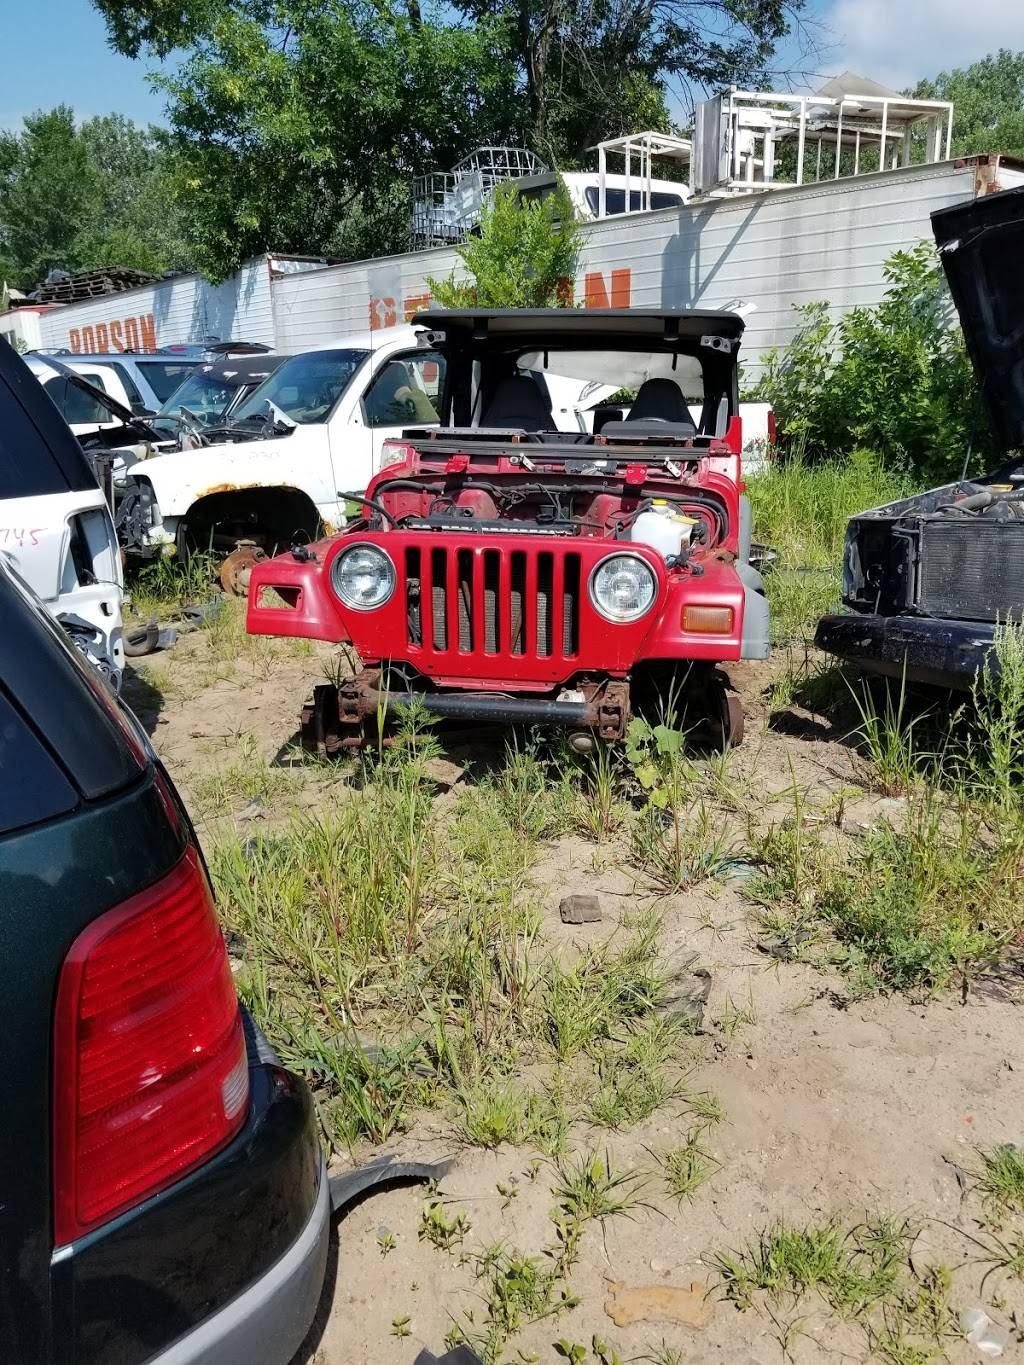 Highway 101 Auto Salvage Inc - car repair  | Photo 7 of 10 | Address: 9099 W Hwy 101 Frontage Rd, Savage, MN 55378, USA | Phone: (952) 445-7020